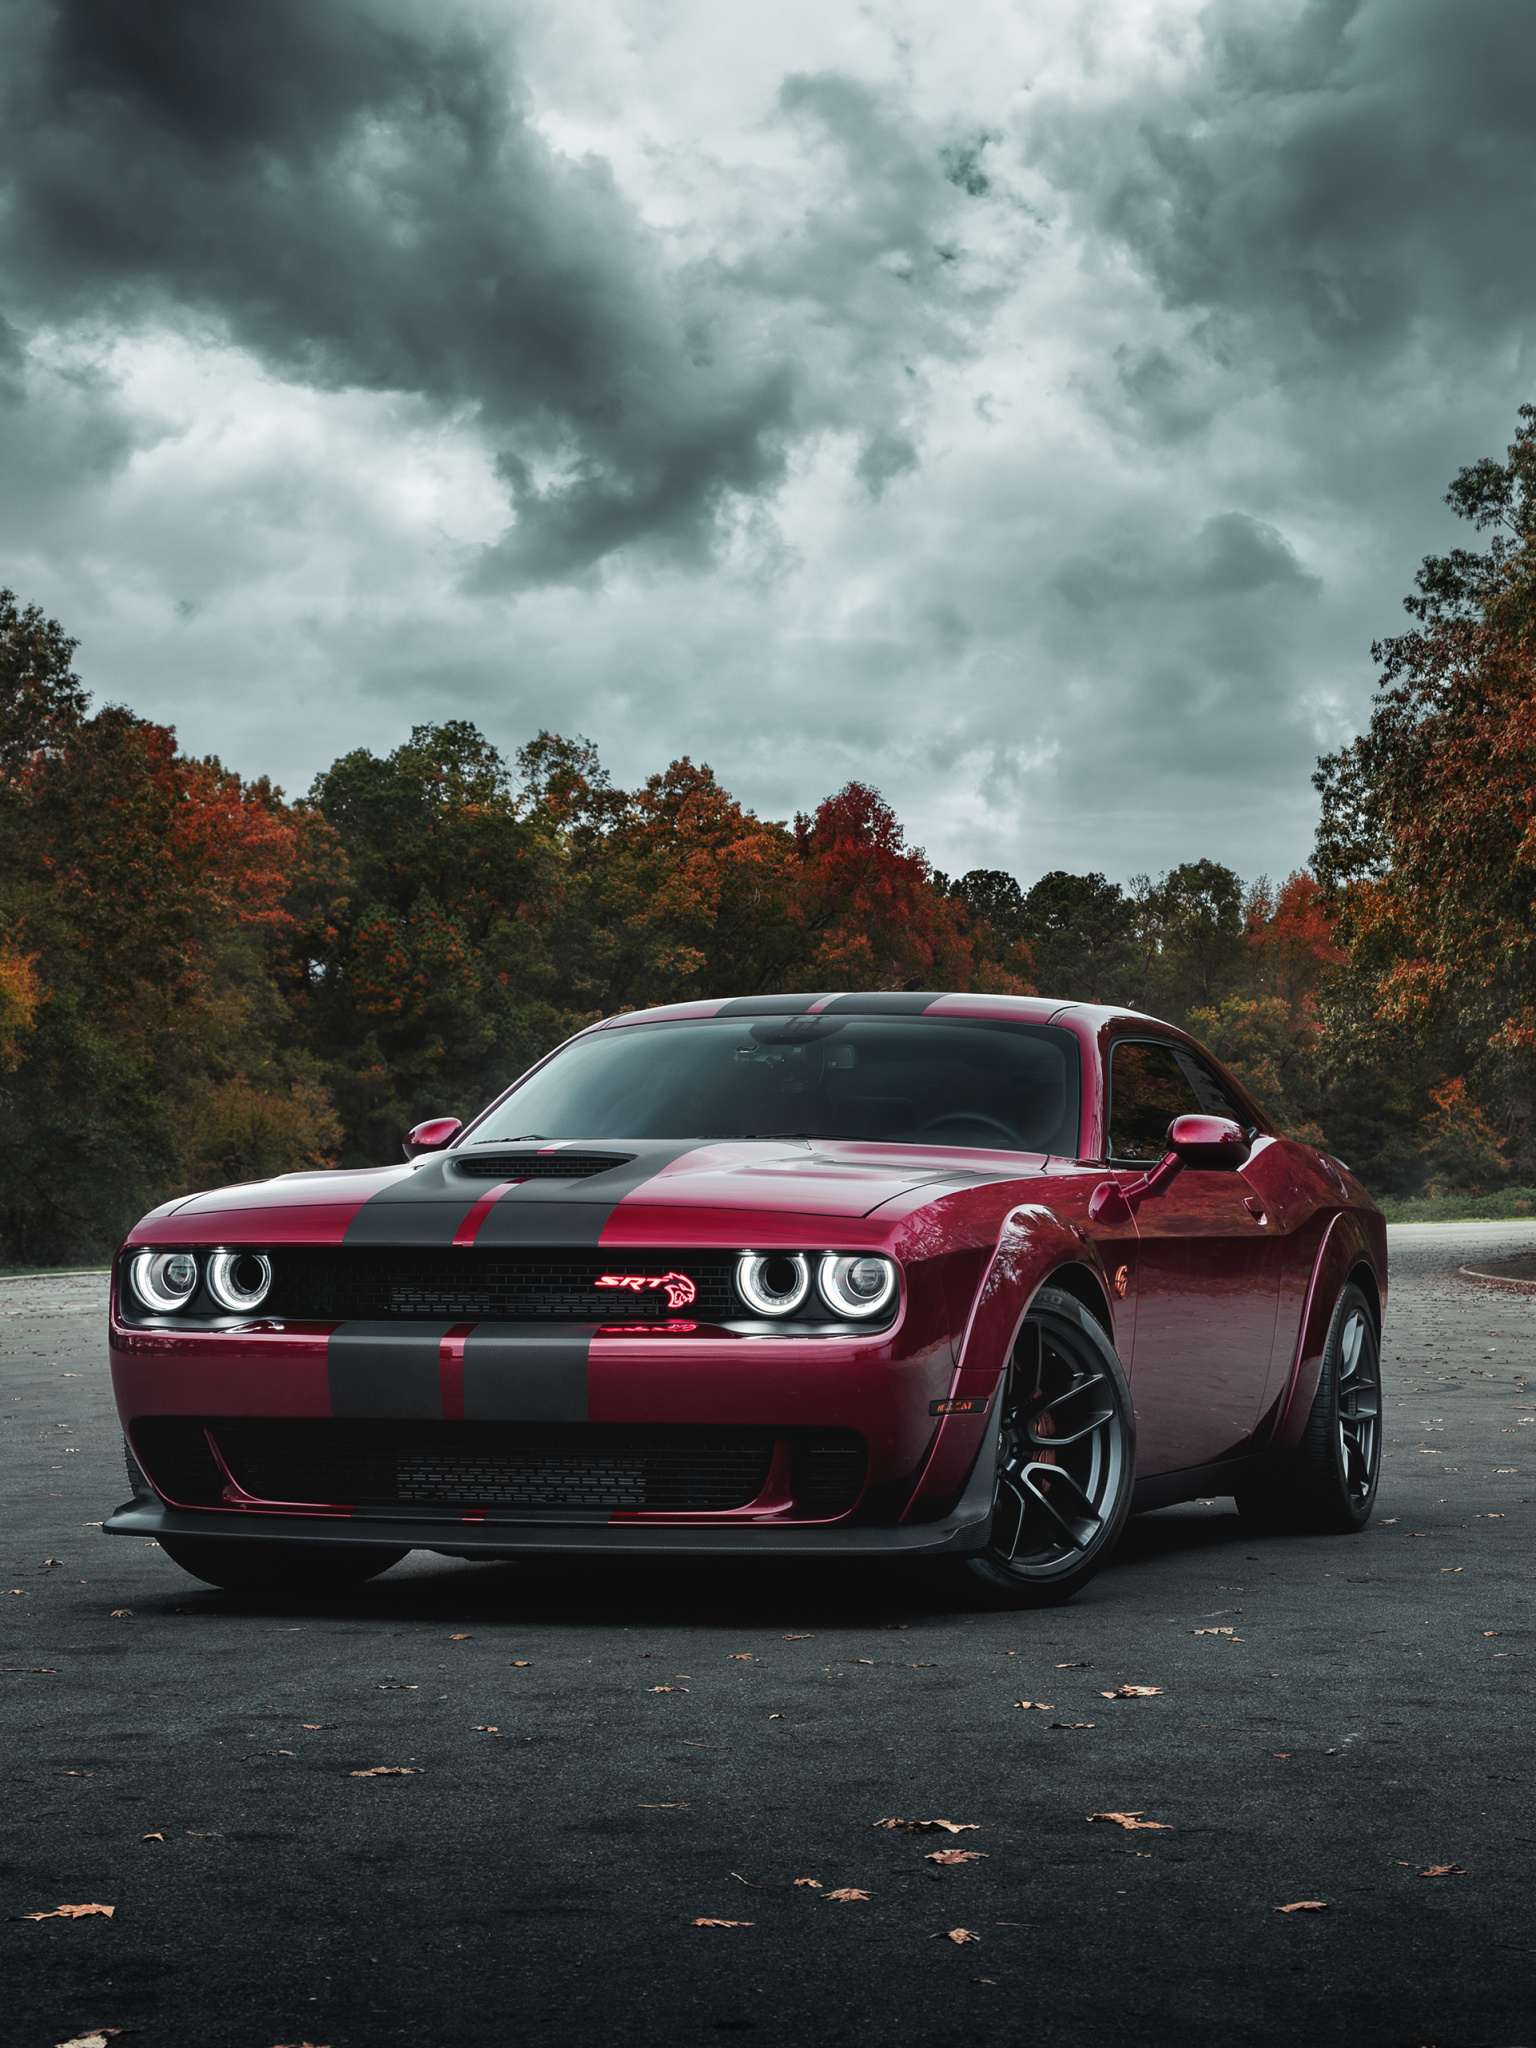 Vehicles Dodge Charger Srt Hellcat Widebody 1536x2048 Wallpaper Id 845164 Mobile Abyss